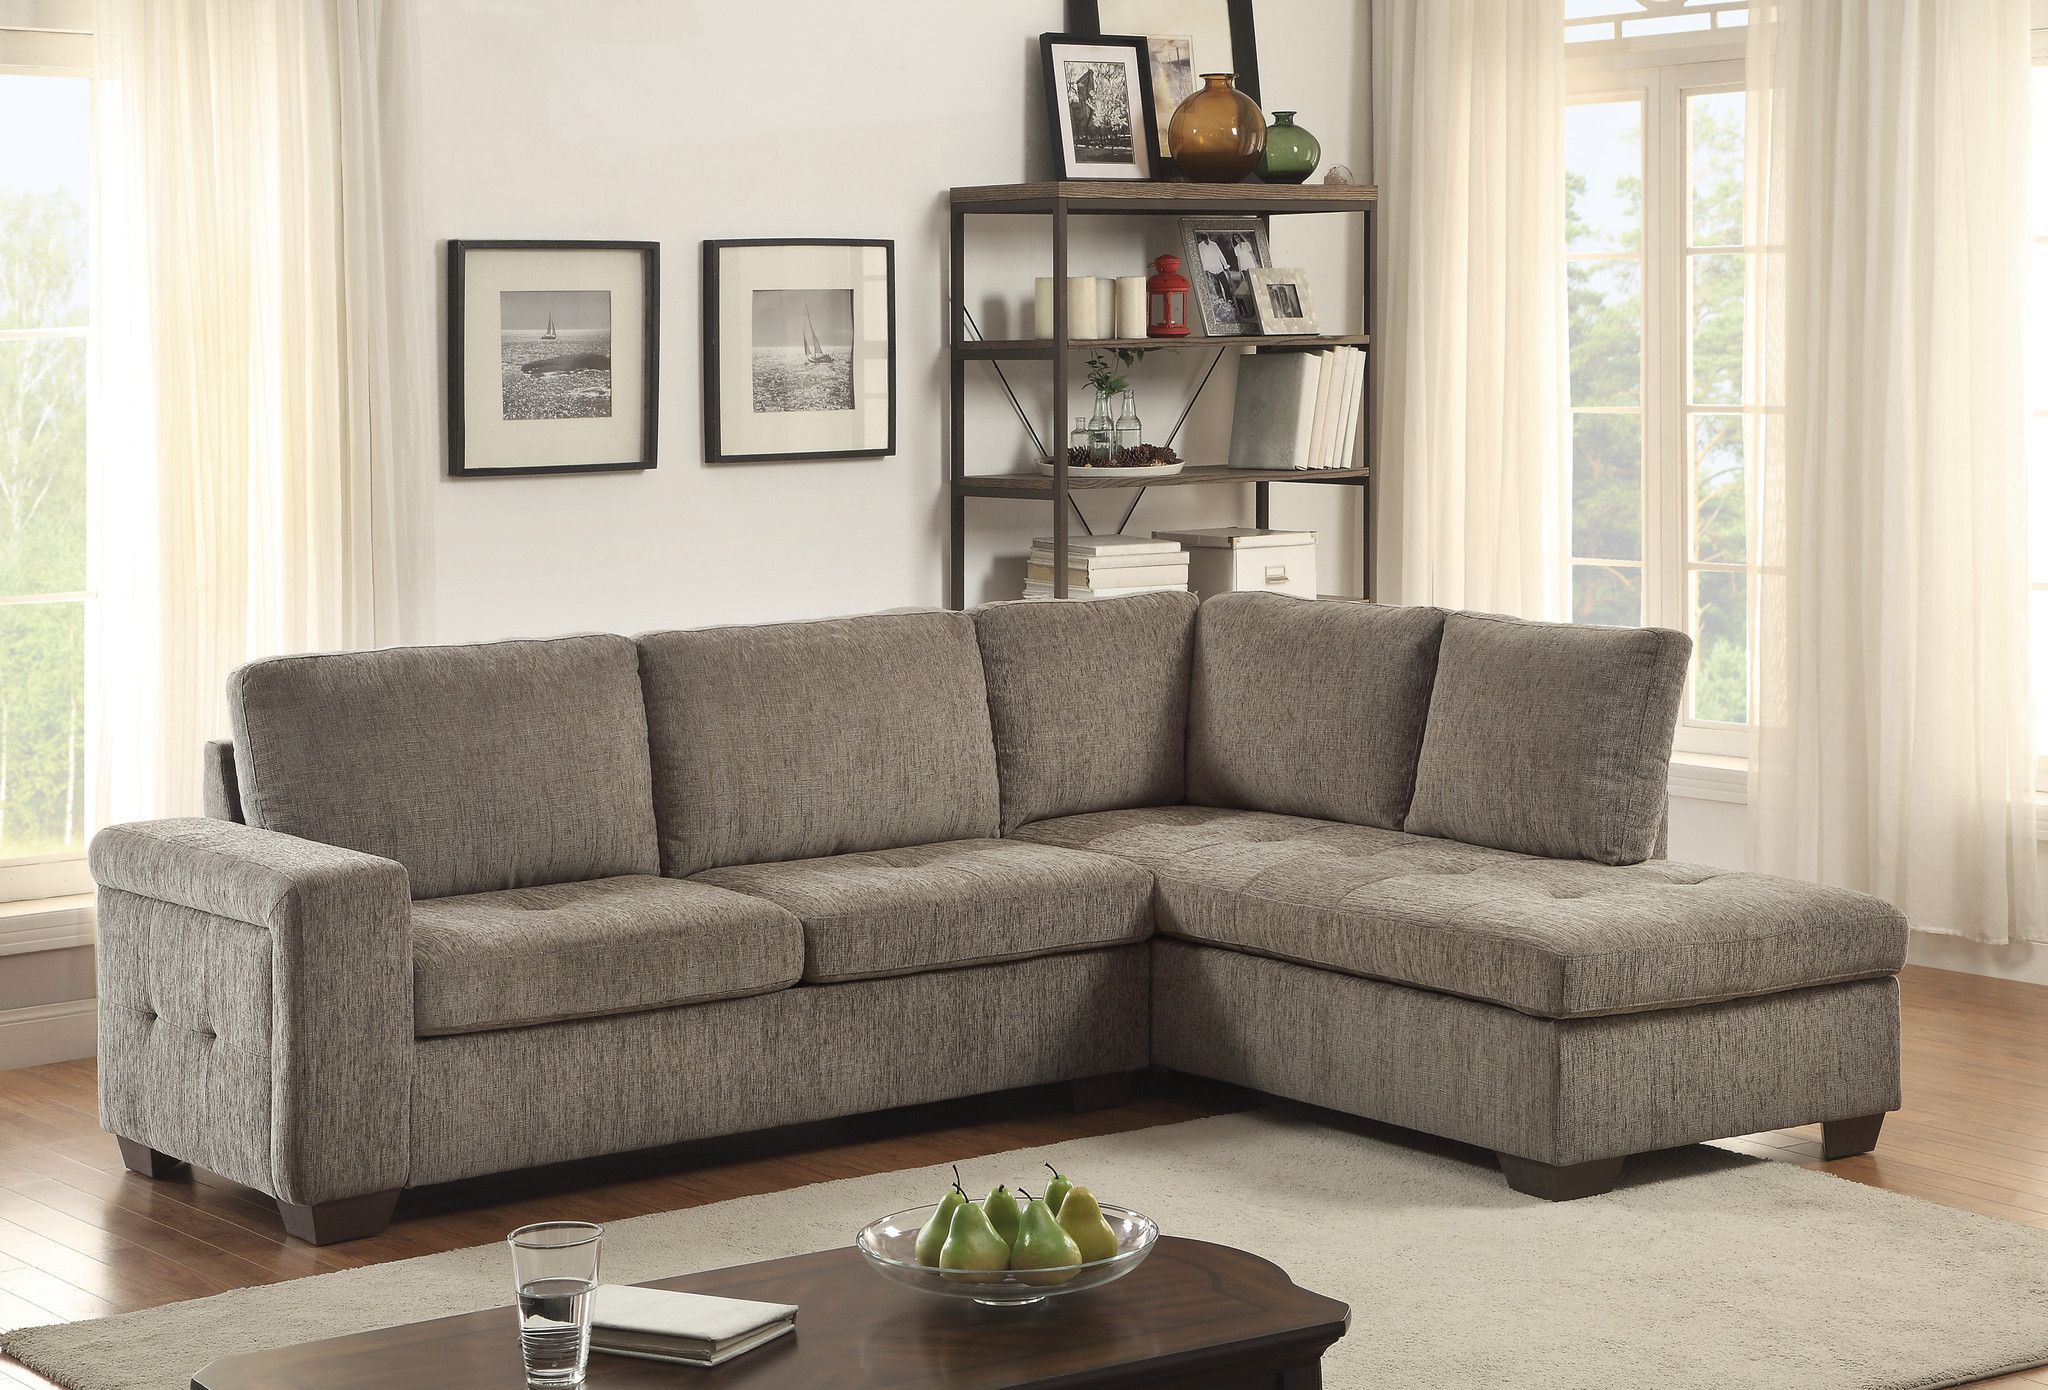 Home elegance calby lane collection pcs sectional sofa with full